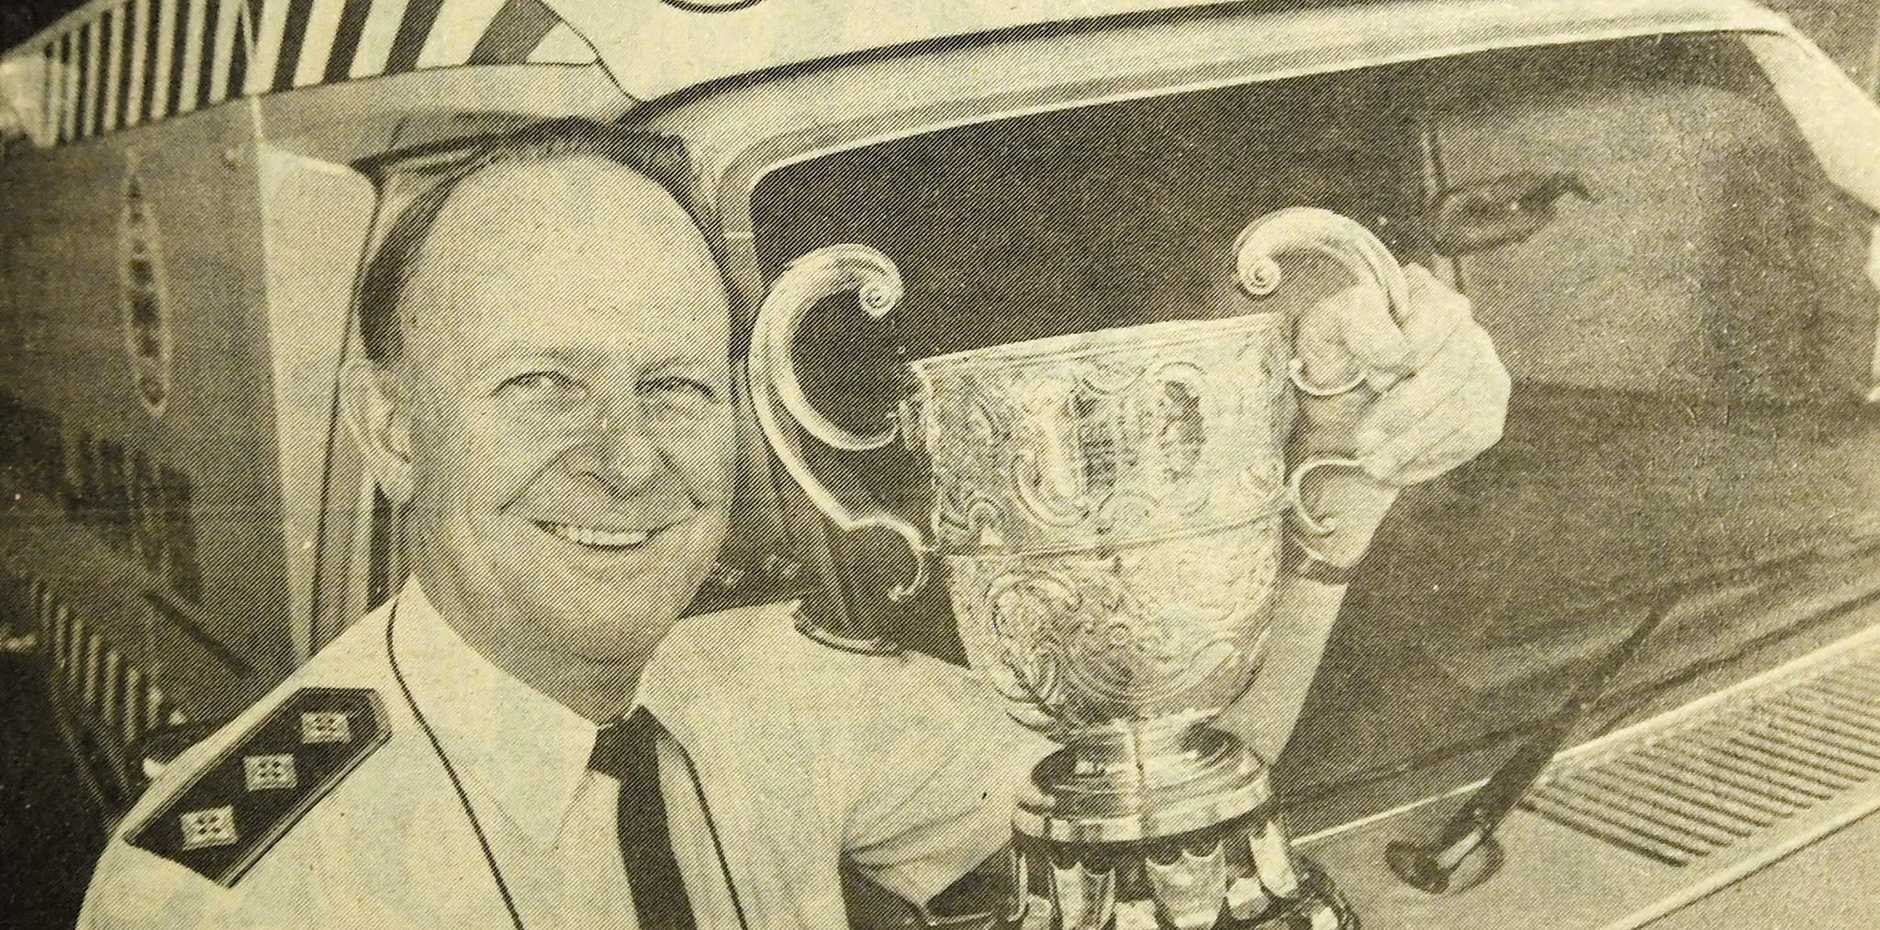 SATURDAY, JULY 22, 1989: Gympie Superintendent Ron Lawrence proudly displays the reugby league Charity Cup which will be contested at Albert Park this weekend.